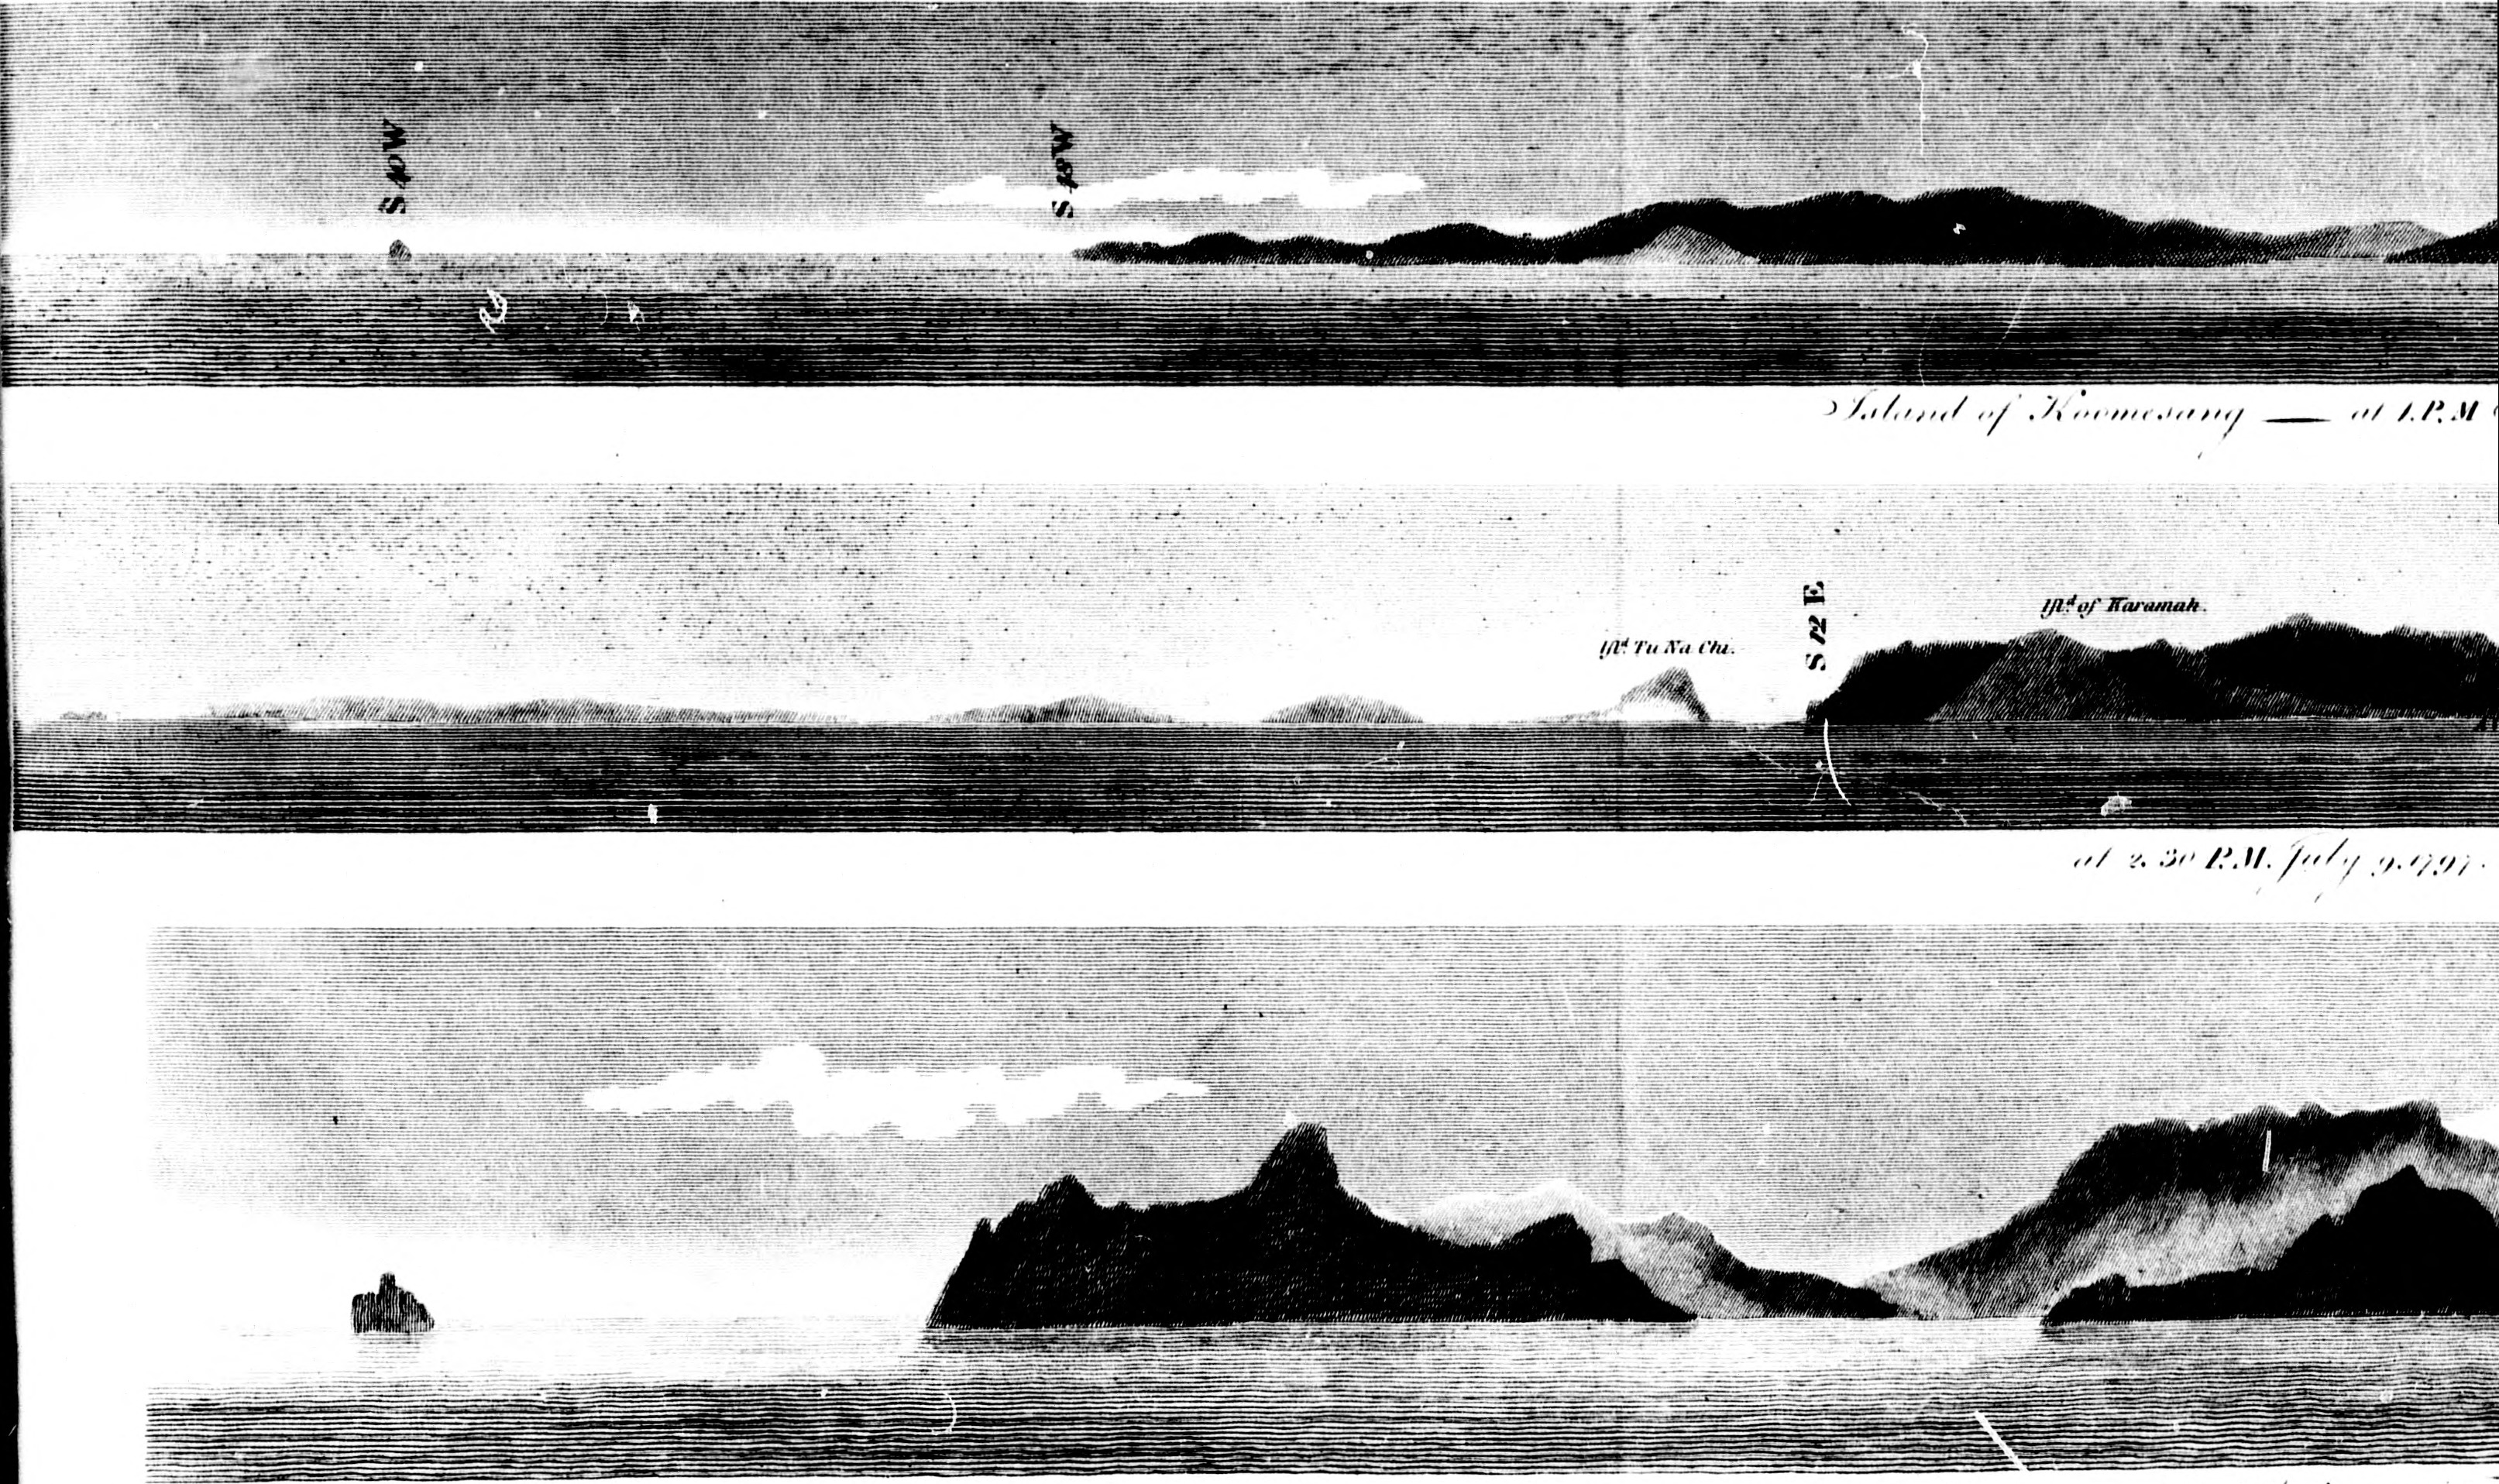 FileA Voyage Of Discovery To The North Pacific Ocean Microform